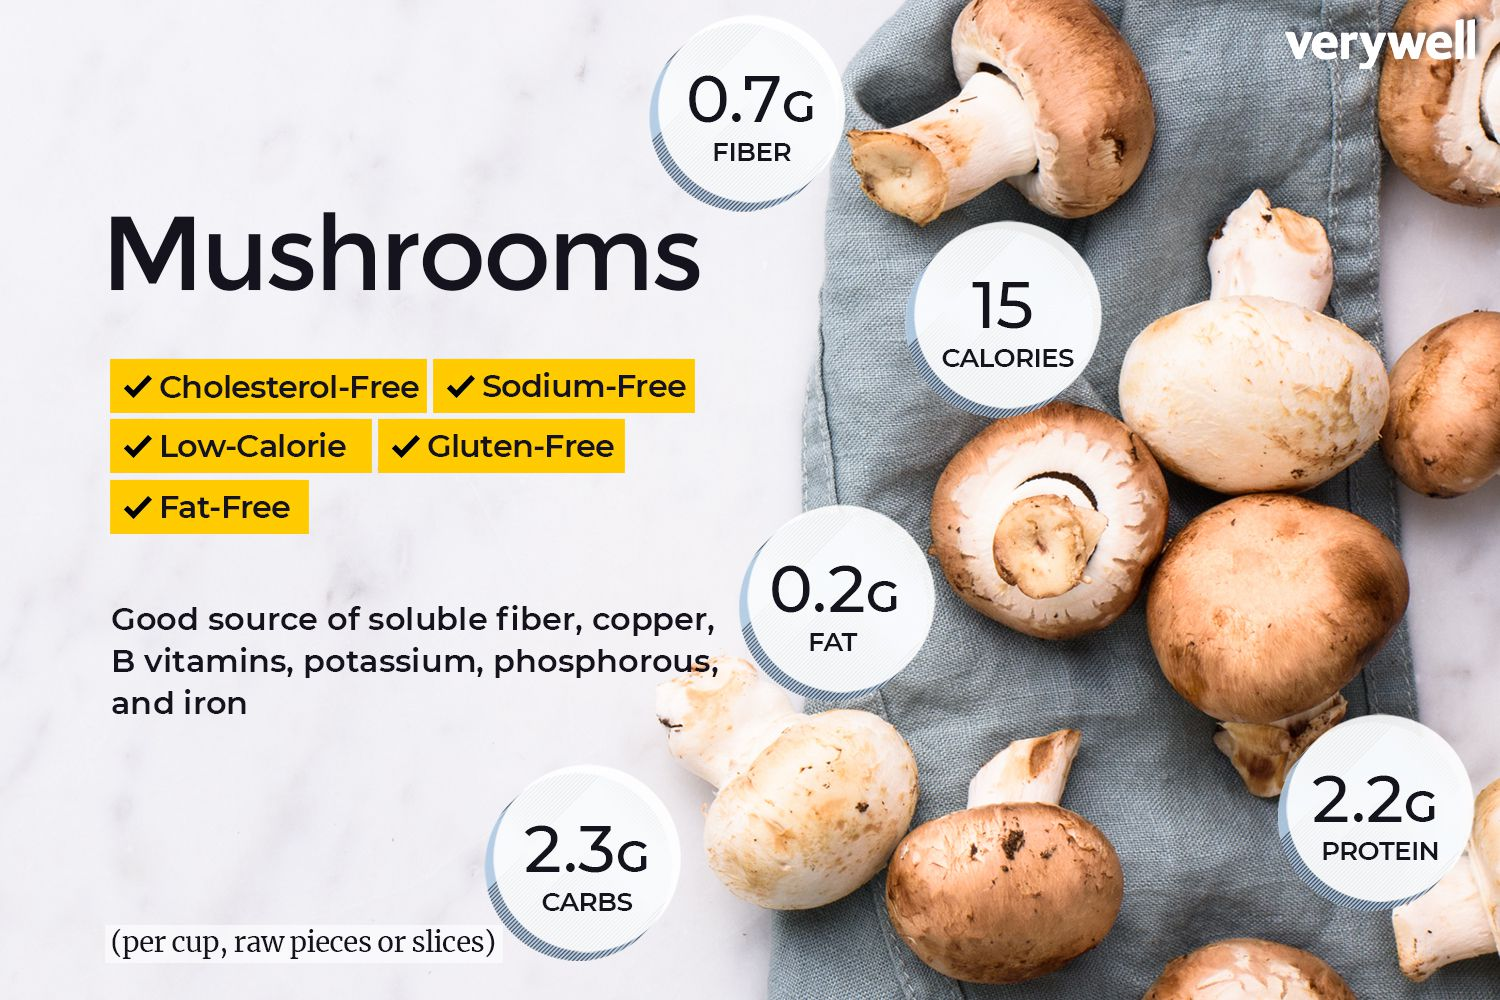 what nutrients are found in mushrooms